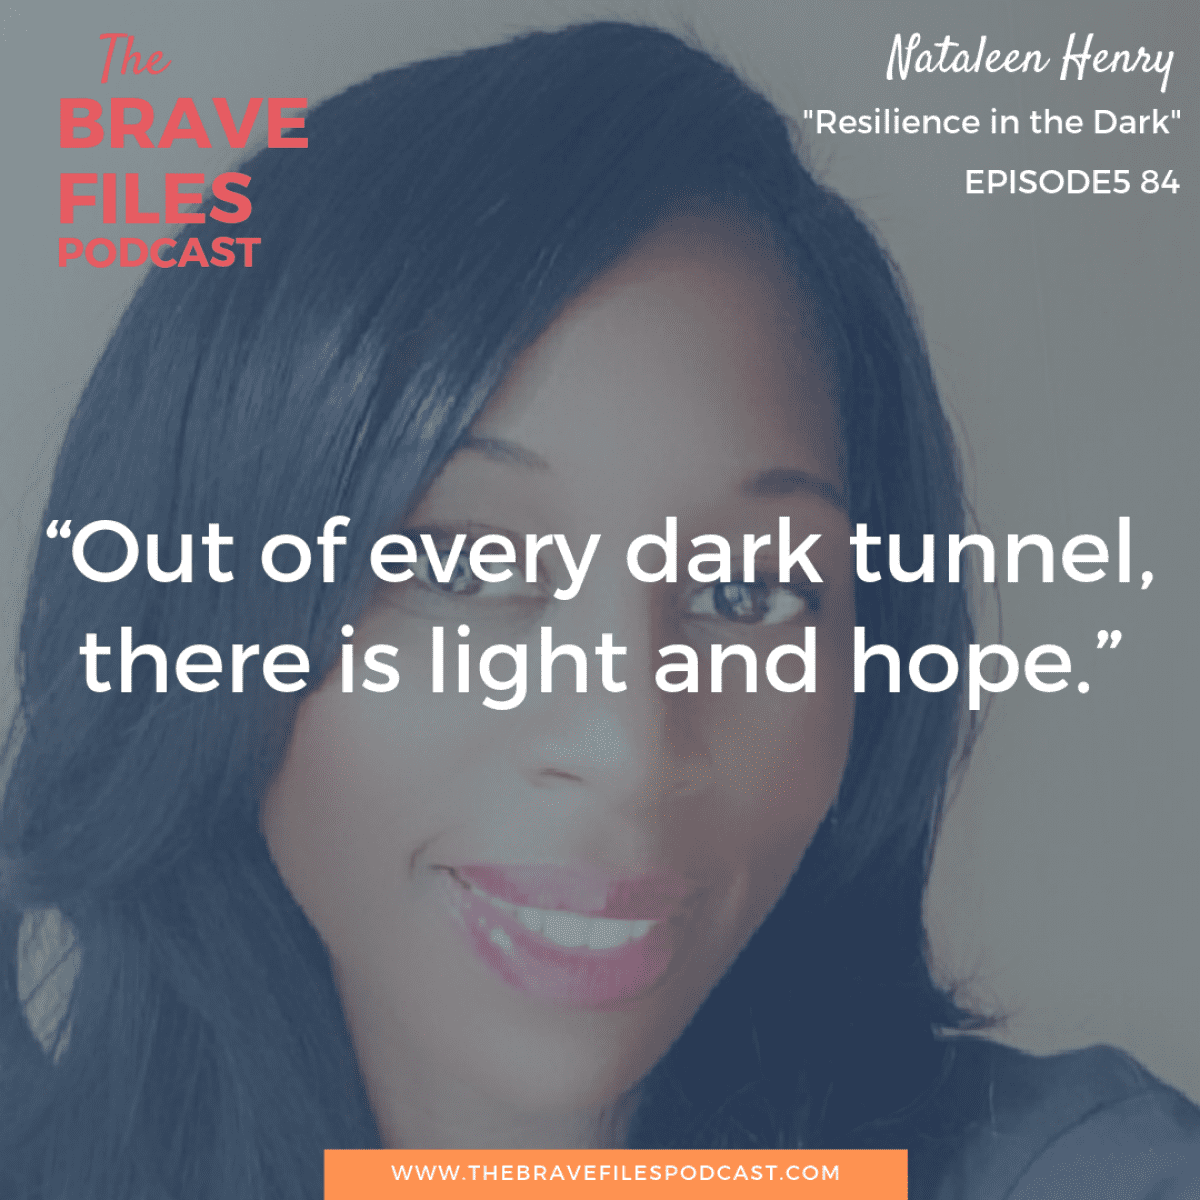 After surviving years of domestic violence and abuse, Nataleen Henry learned to use dance and the retelling of her story to heal and empower others. The Brave Files.